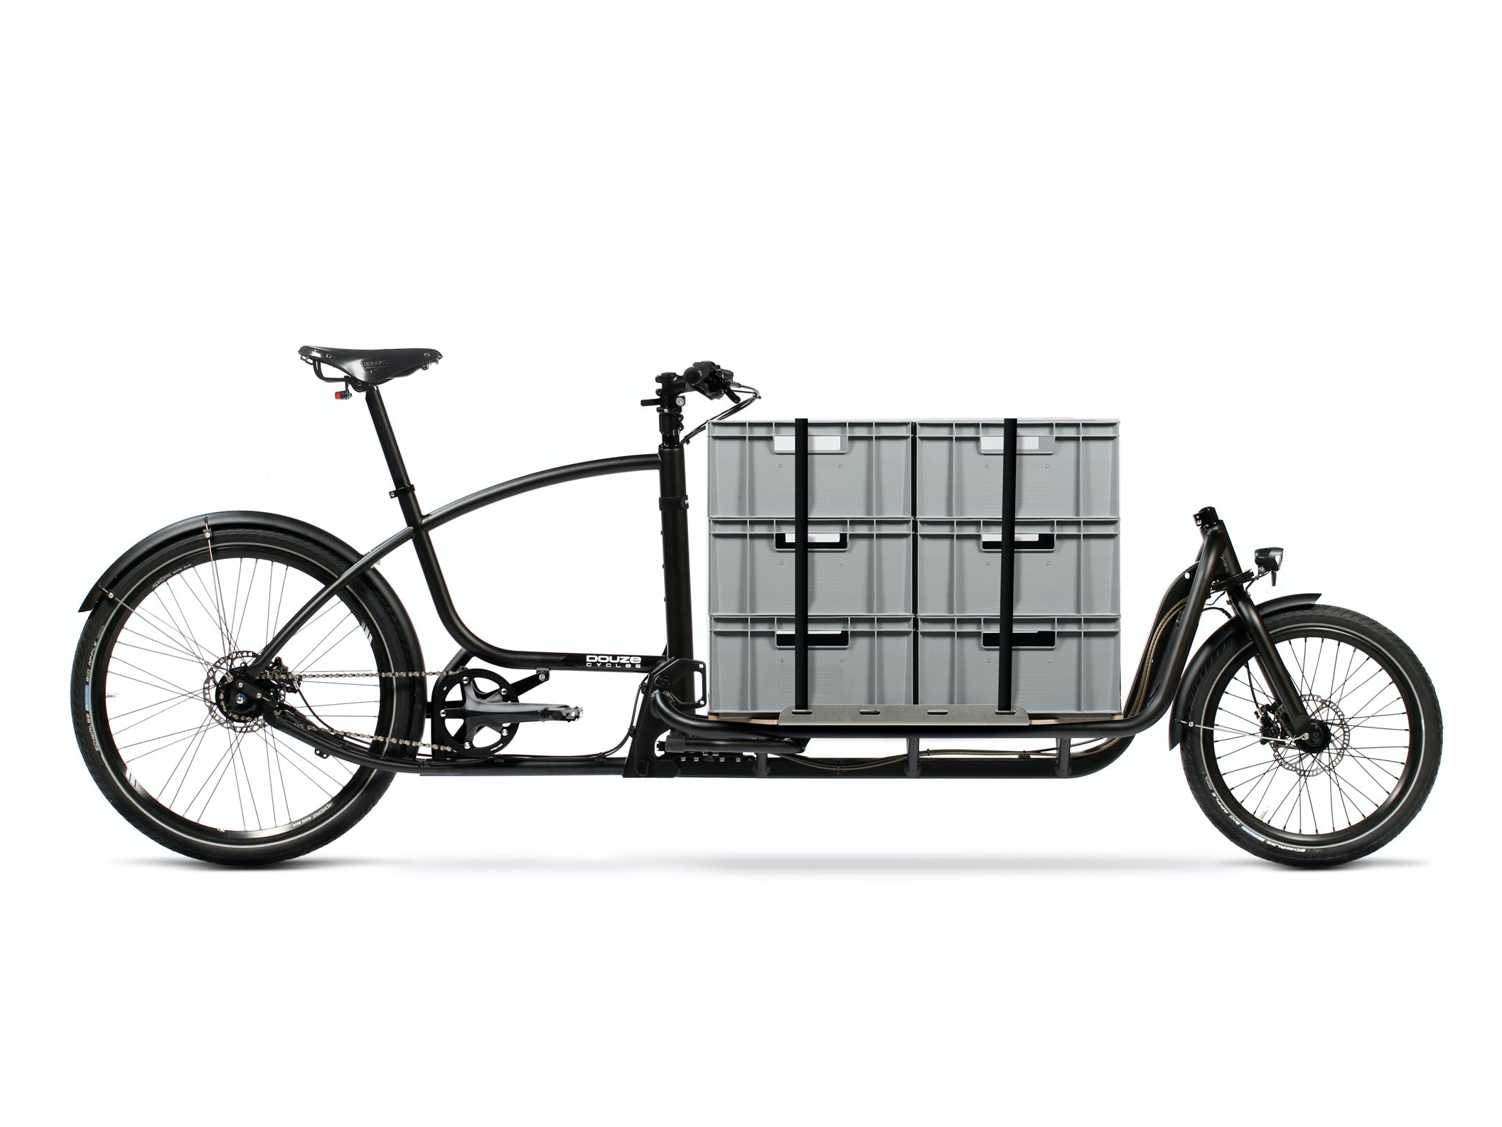 Insulated case transport with cotton insulating insert in two-way cargo bike Douze Cycles.